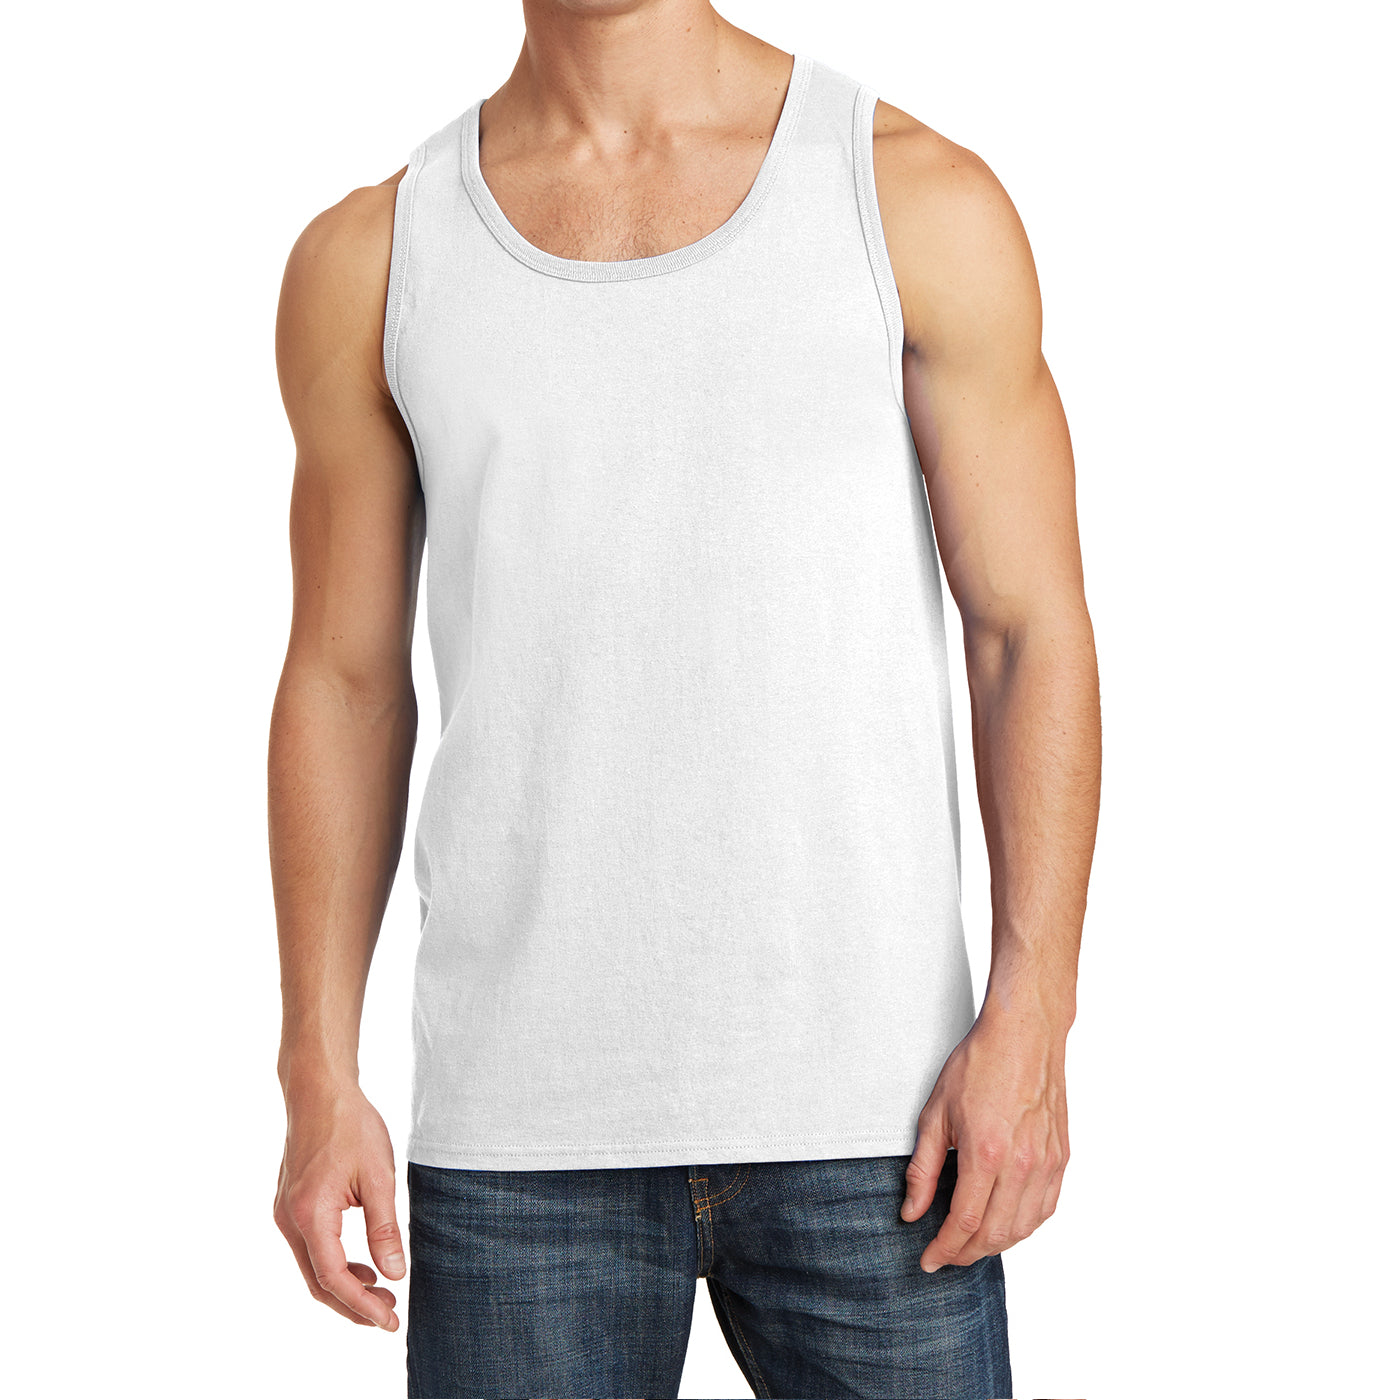 Men's Core Cotton Tank Top - White - Front